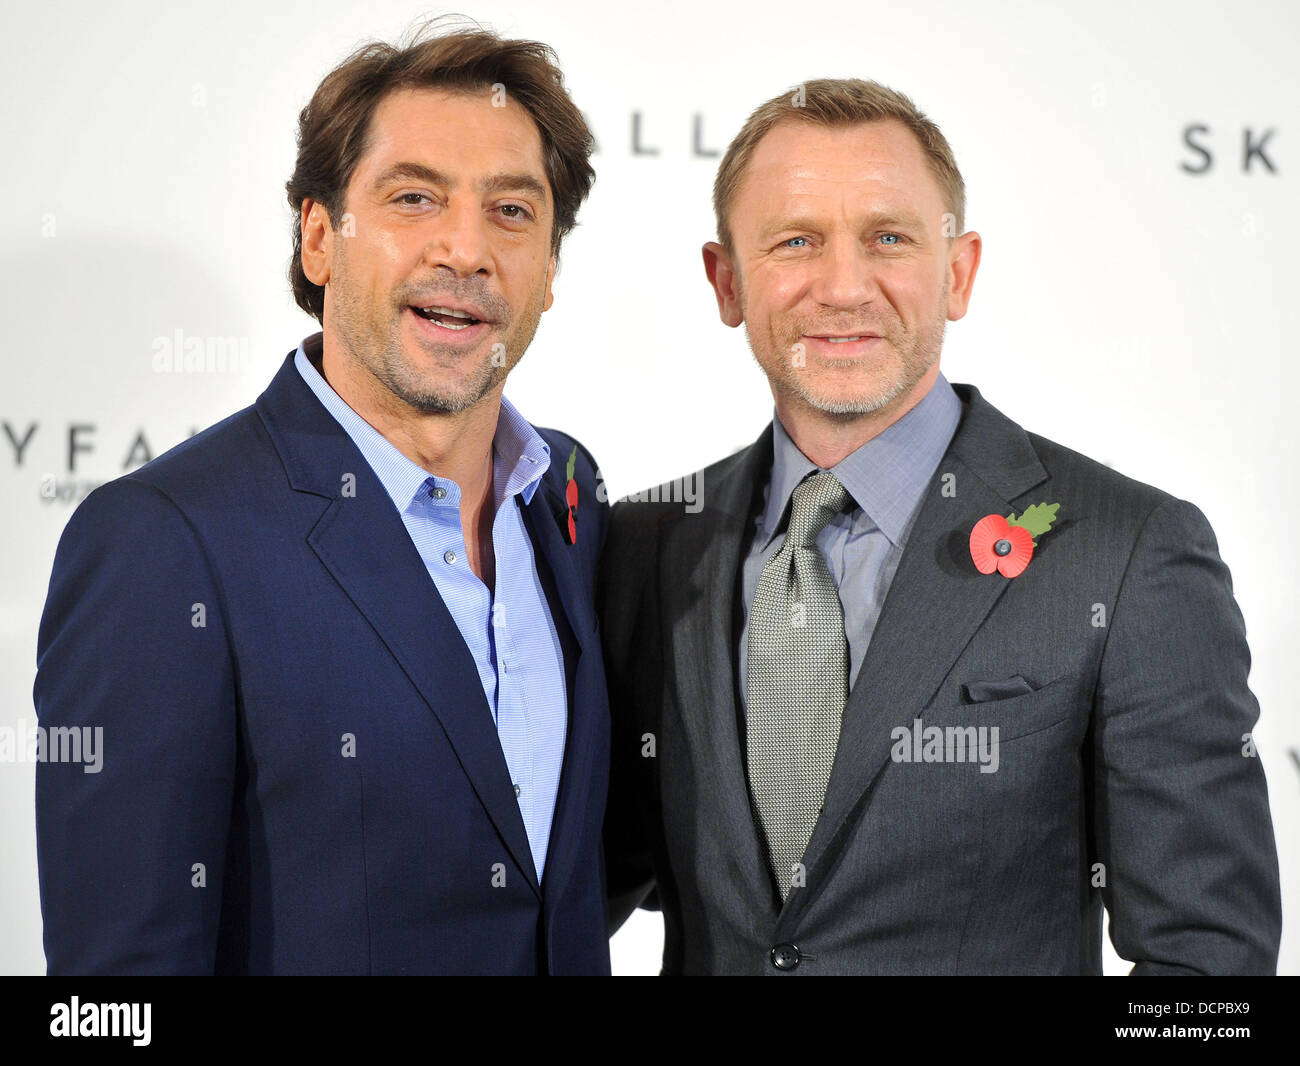 Daniel Craig, Javier Bardem 'Skyfall', The 23rd James Bond